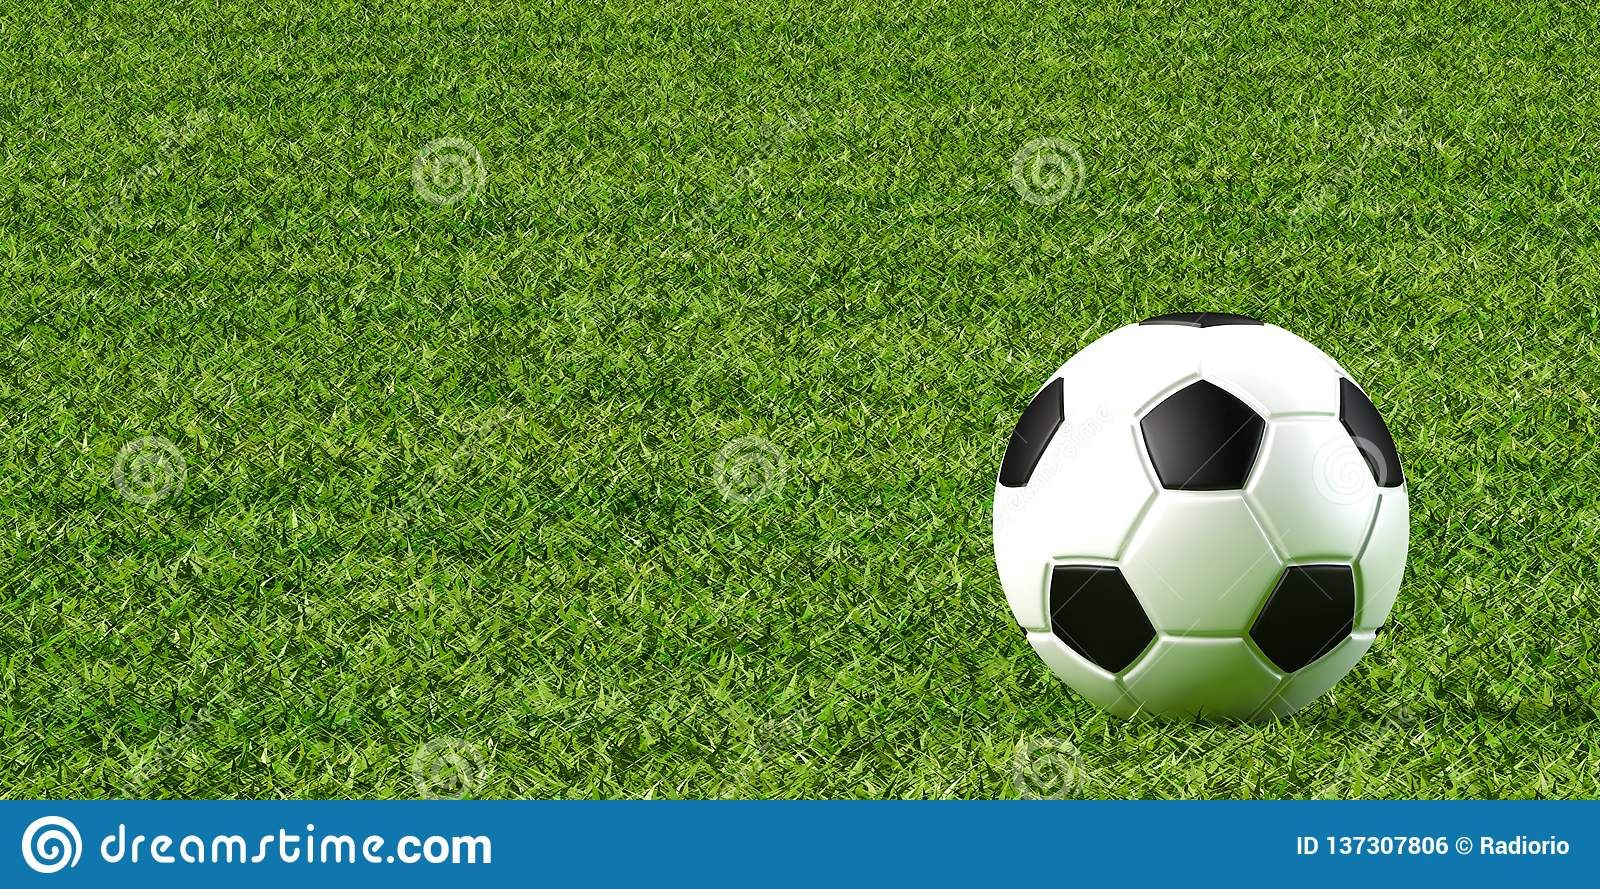 Soccer ball and lawn